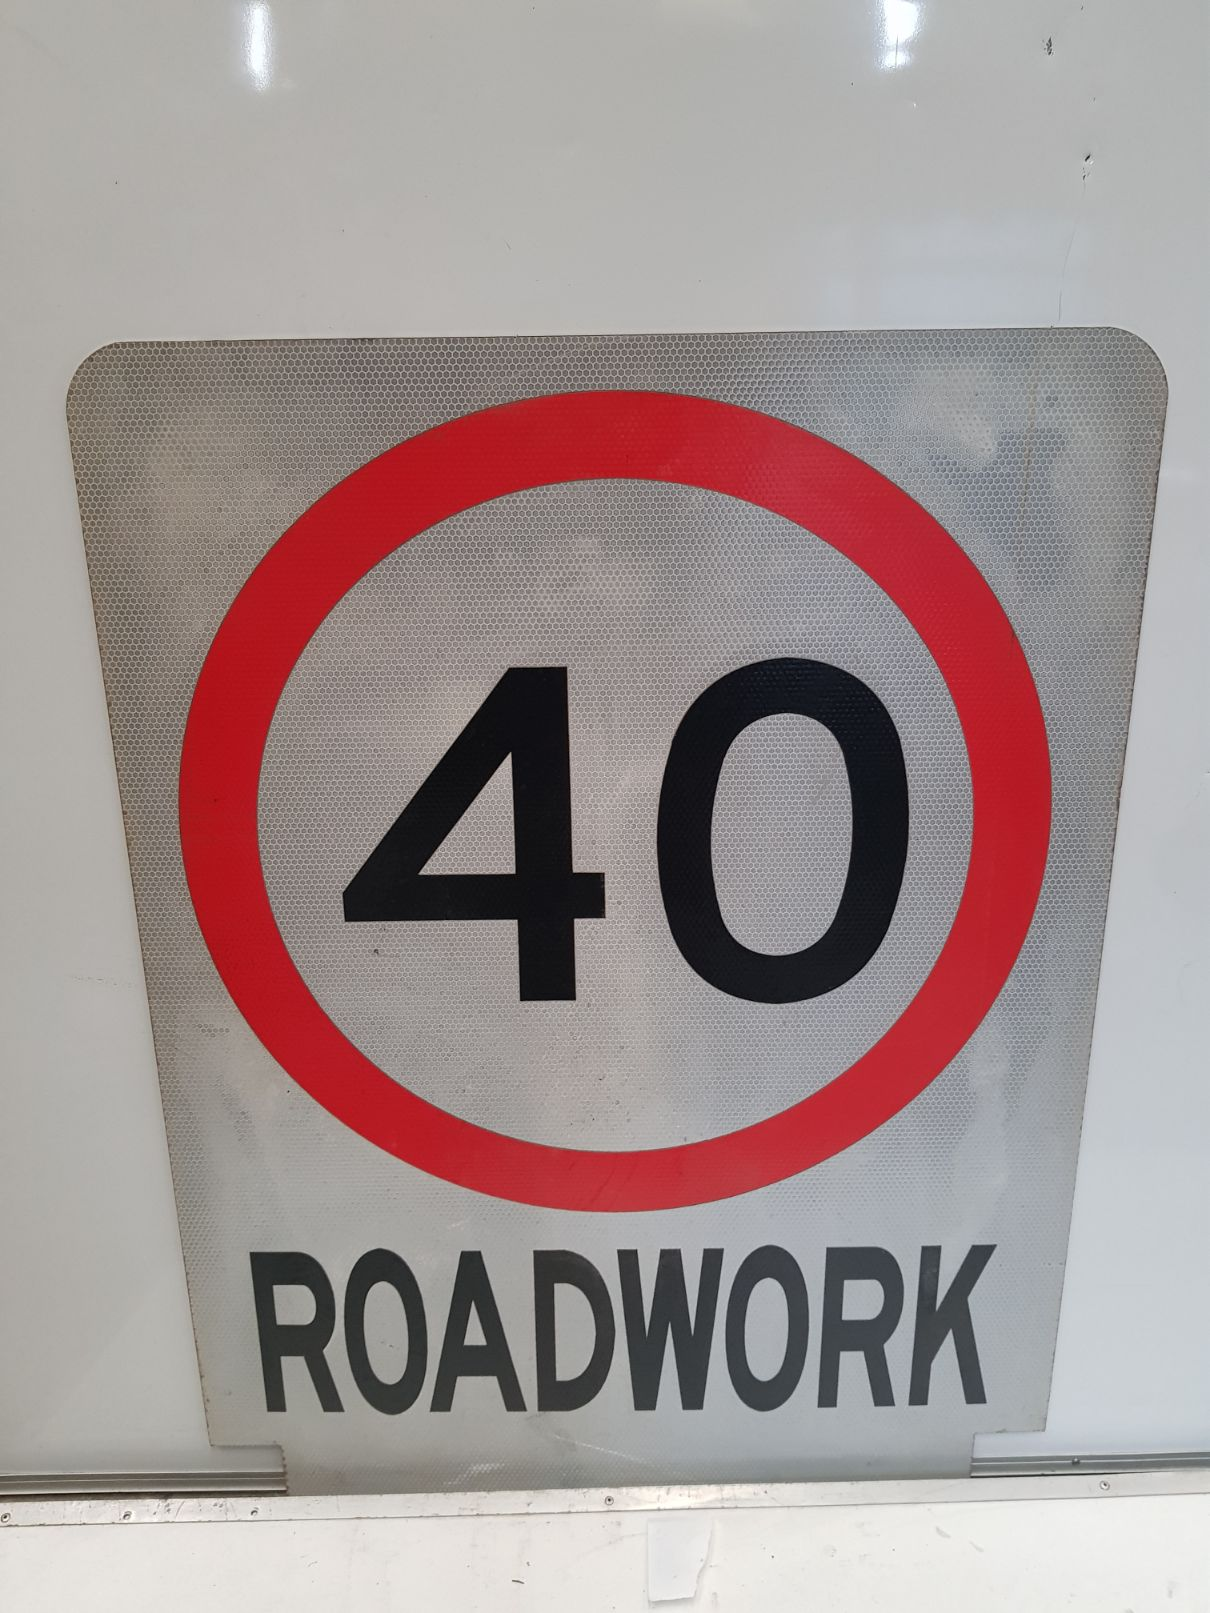 Roadwork 40 Speed Sign (2).jpg